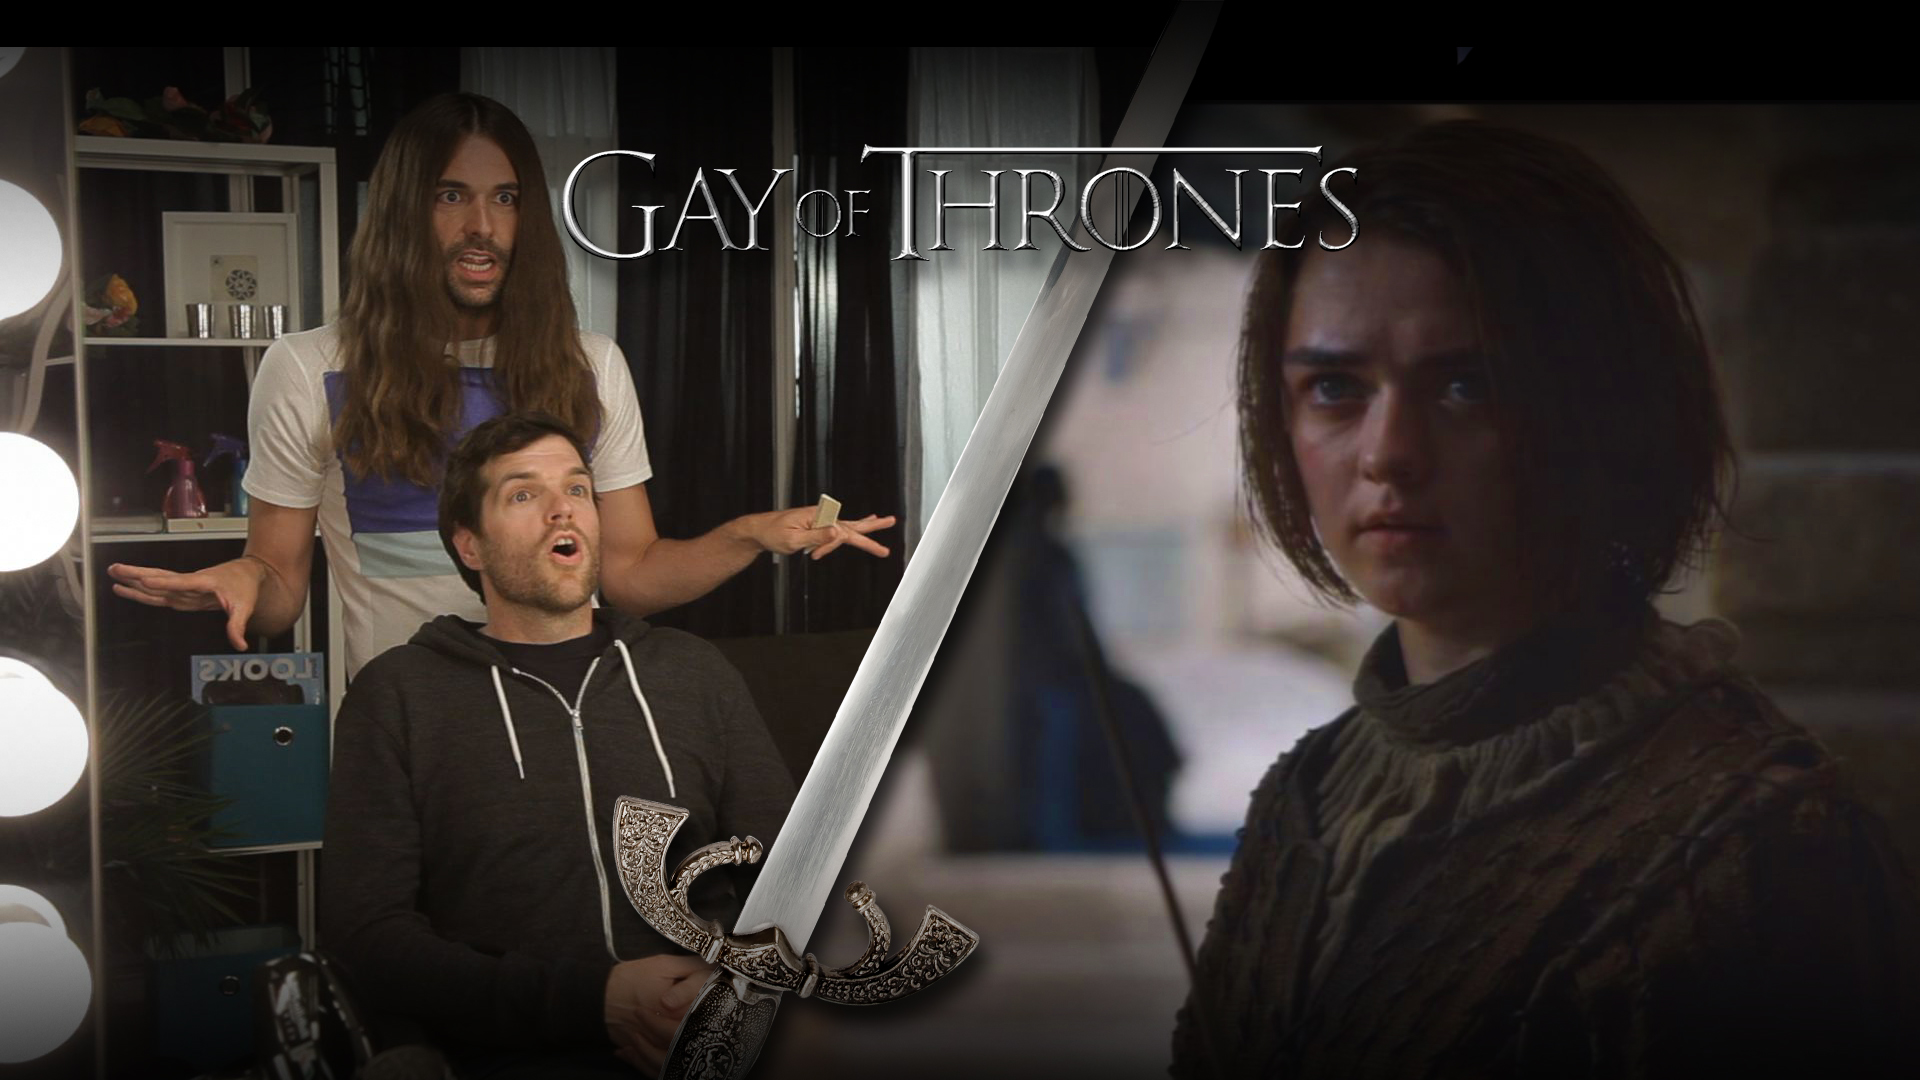 'Gay of Thrones' Recaps 'Game of Thrones' with Timothy Simons